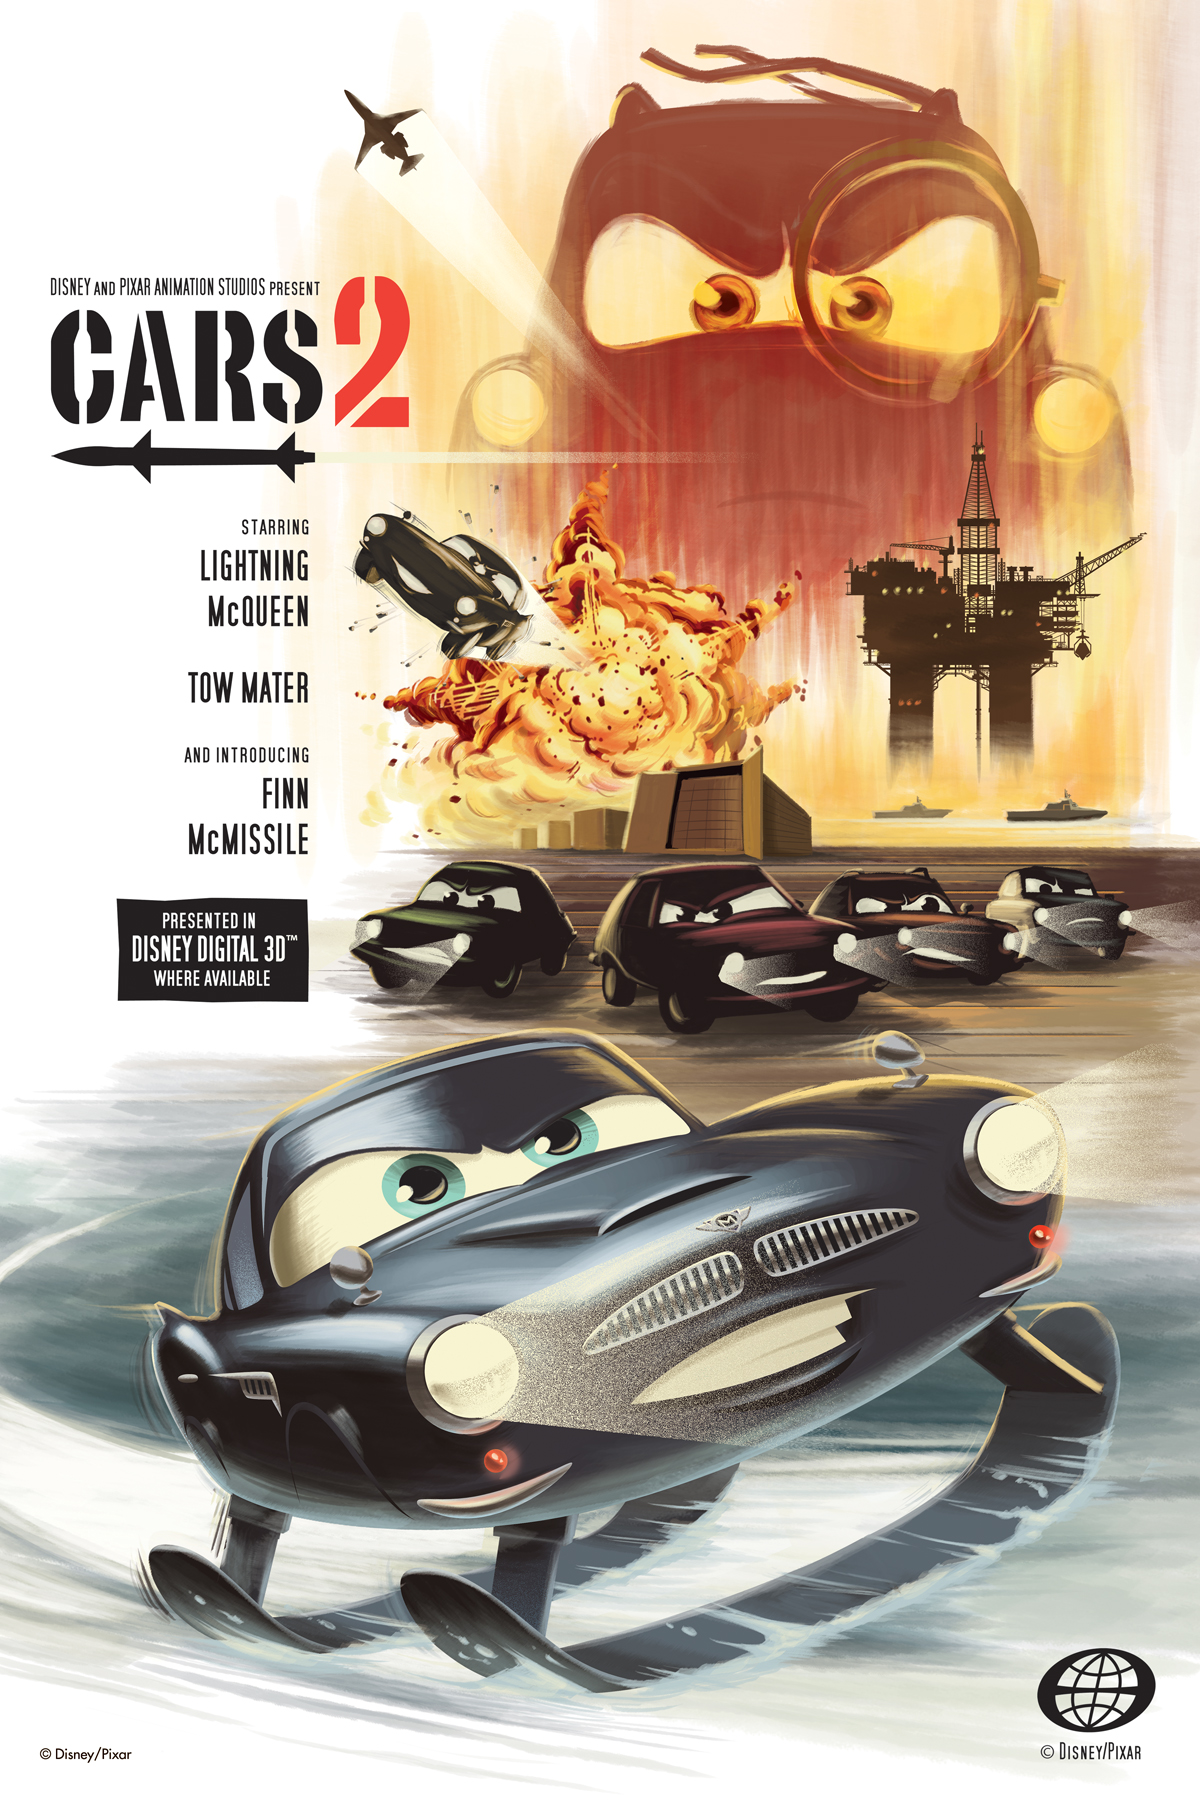 Cars 2 Au Cinema Le 27 Juillet 2011 Filrouge Automobile